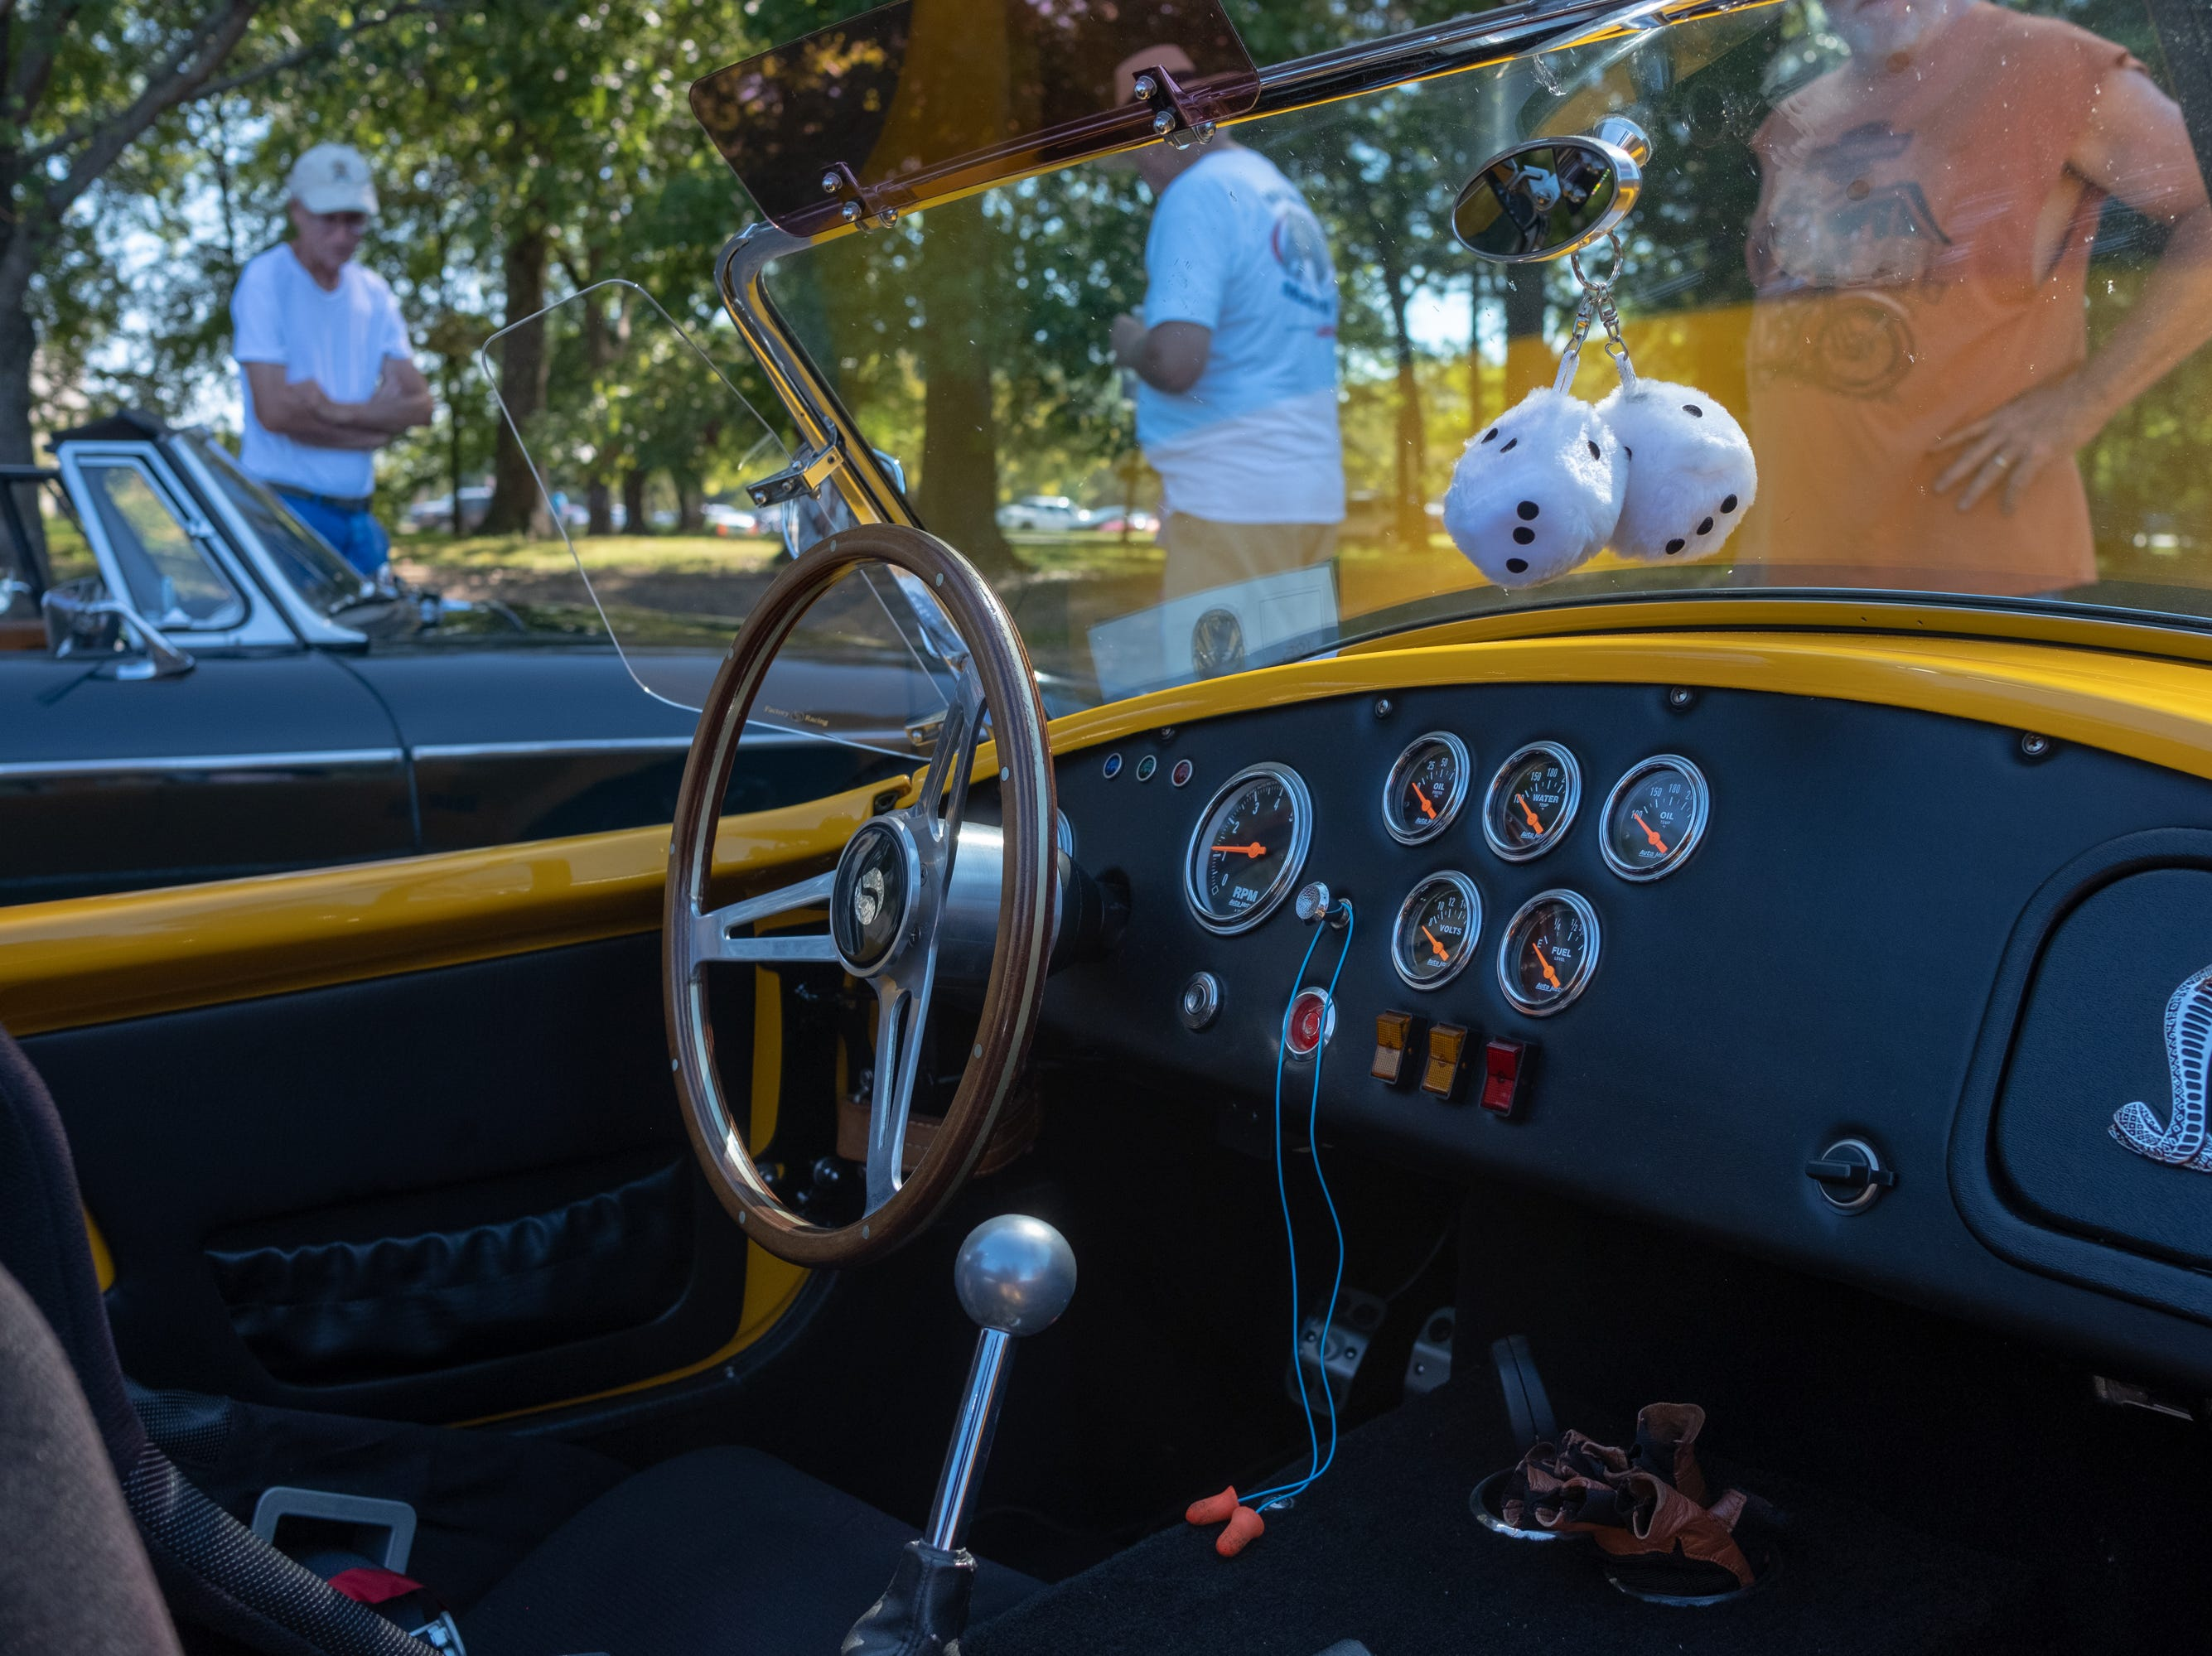 Earplugs hang near the the steering wheel of a 1965 Ford Cobra at the Collierville Classic Car Show on Sept. 15, 2018.